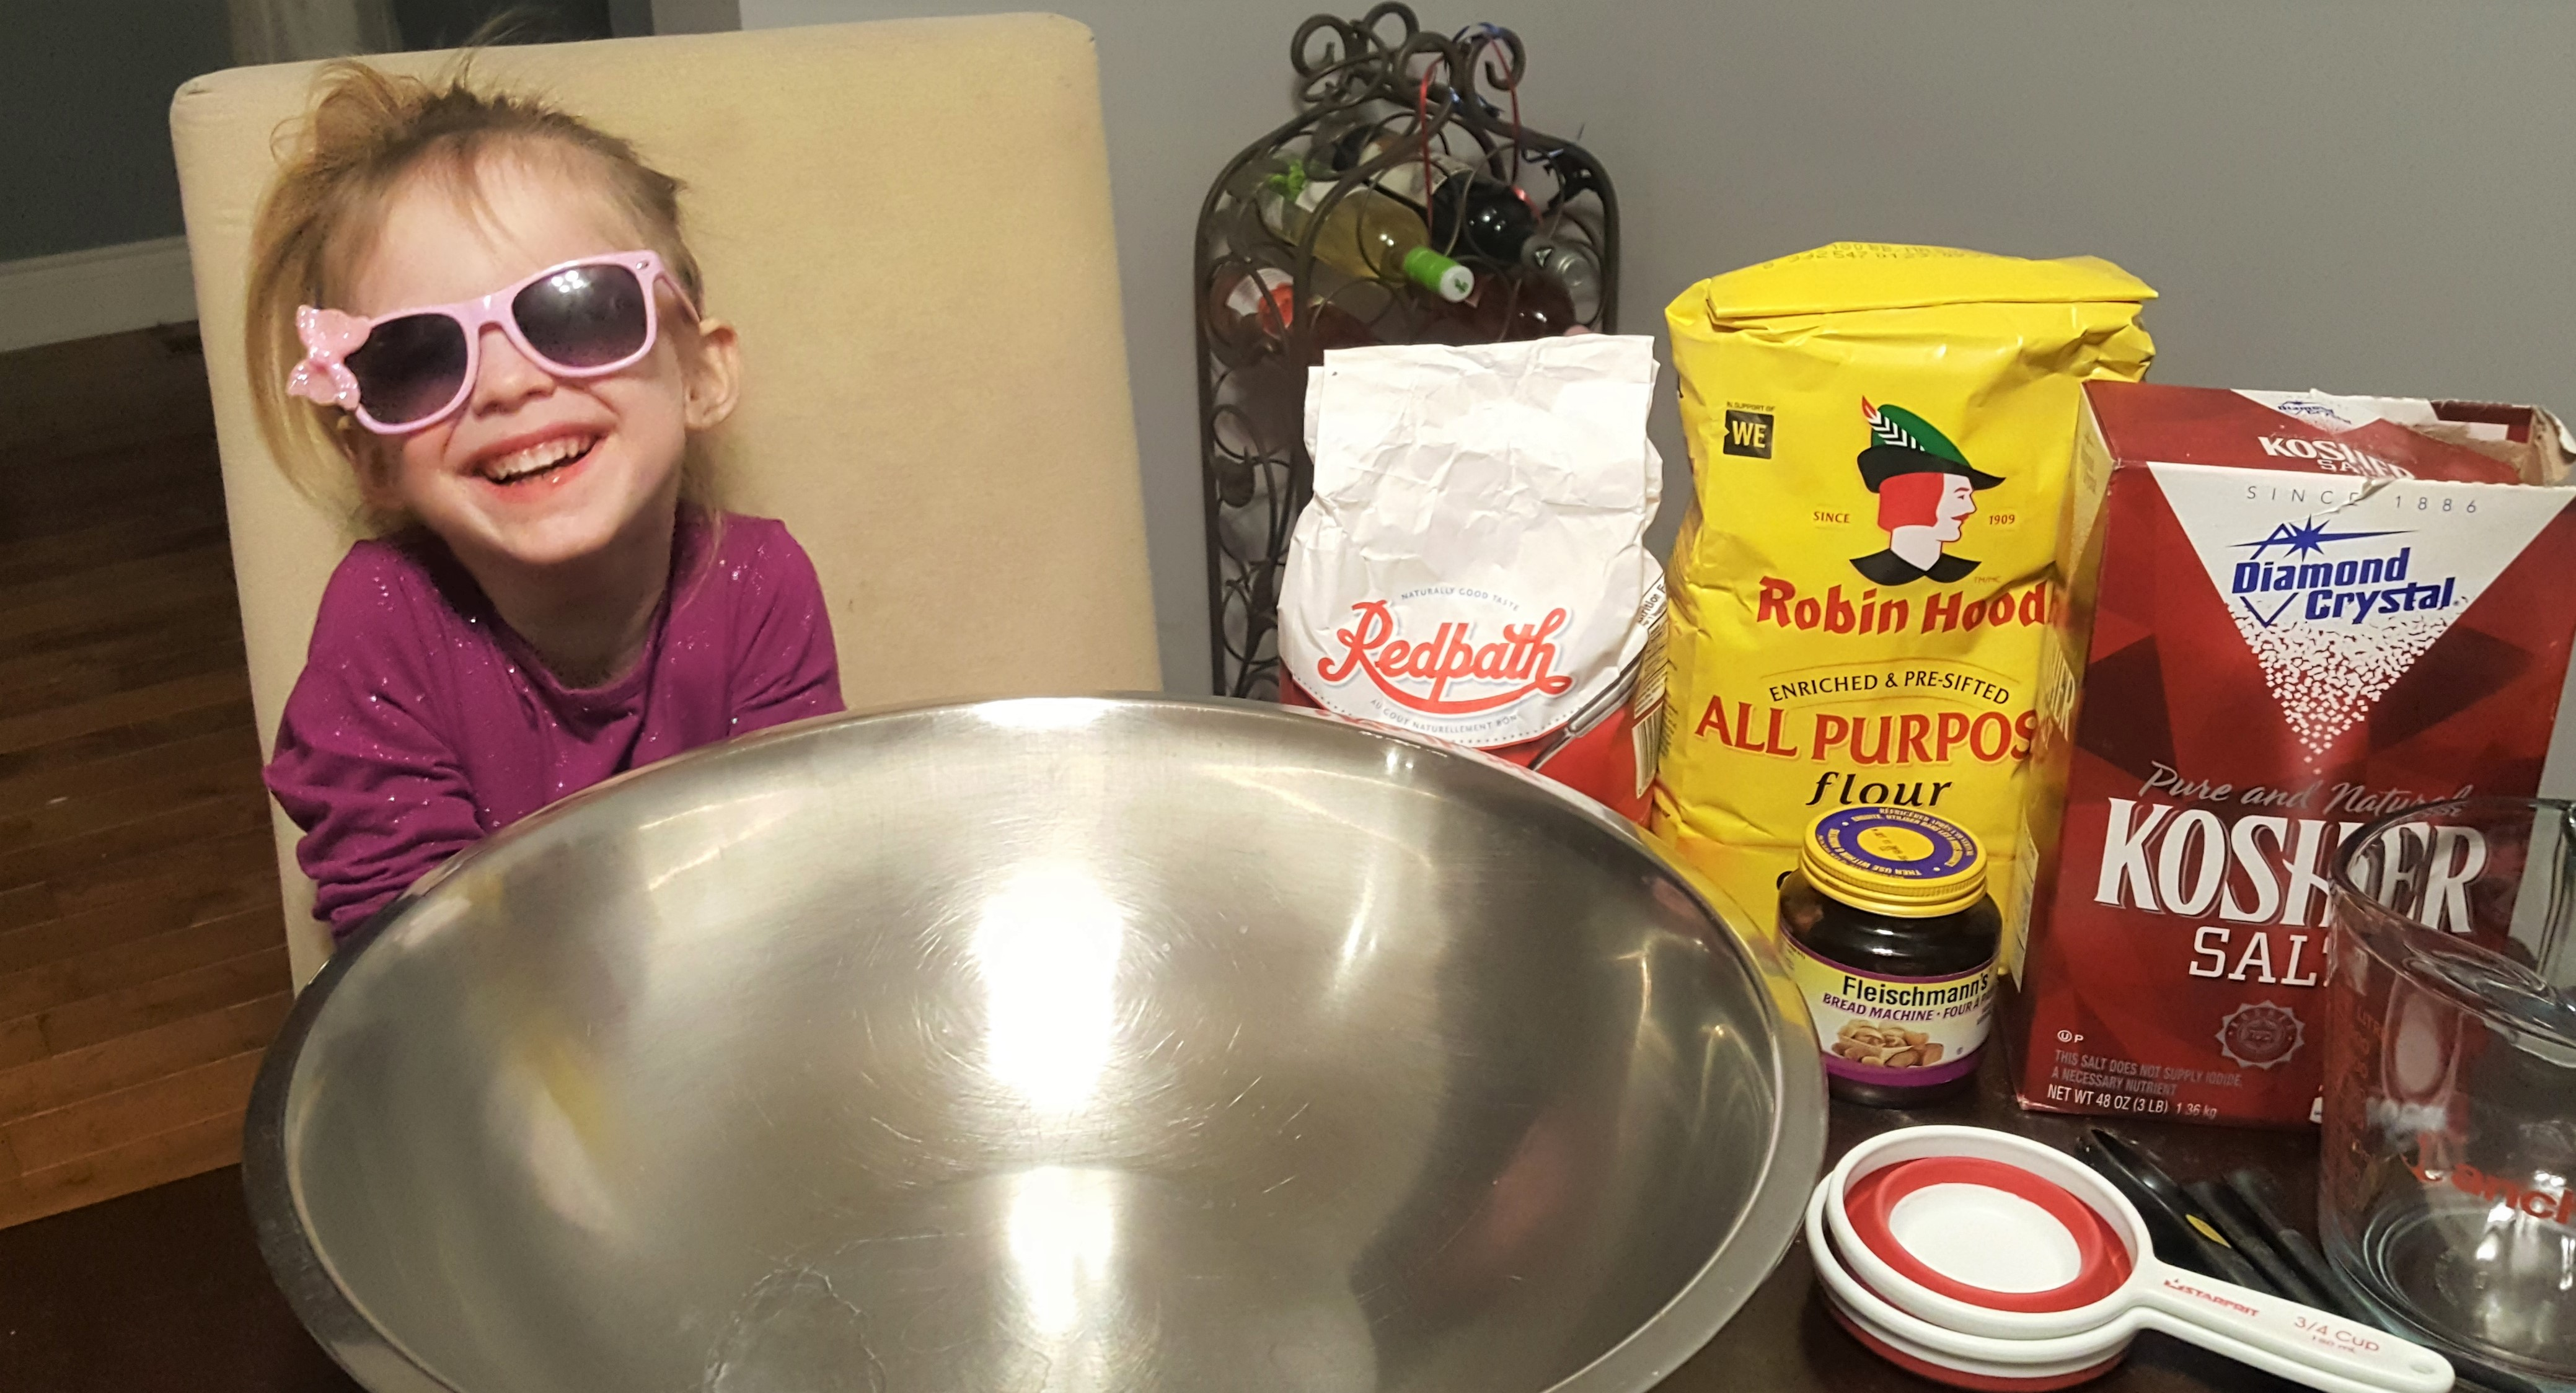 Young child wearing sunglasses and laughing with a mixing bowl and baking ingredients on a table in front of her.